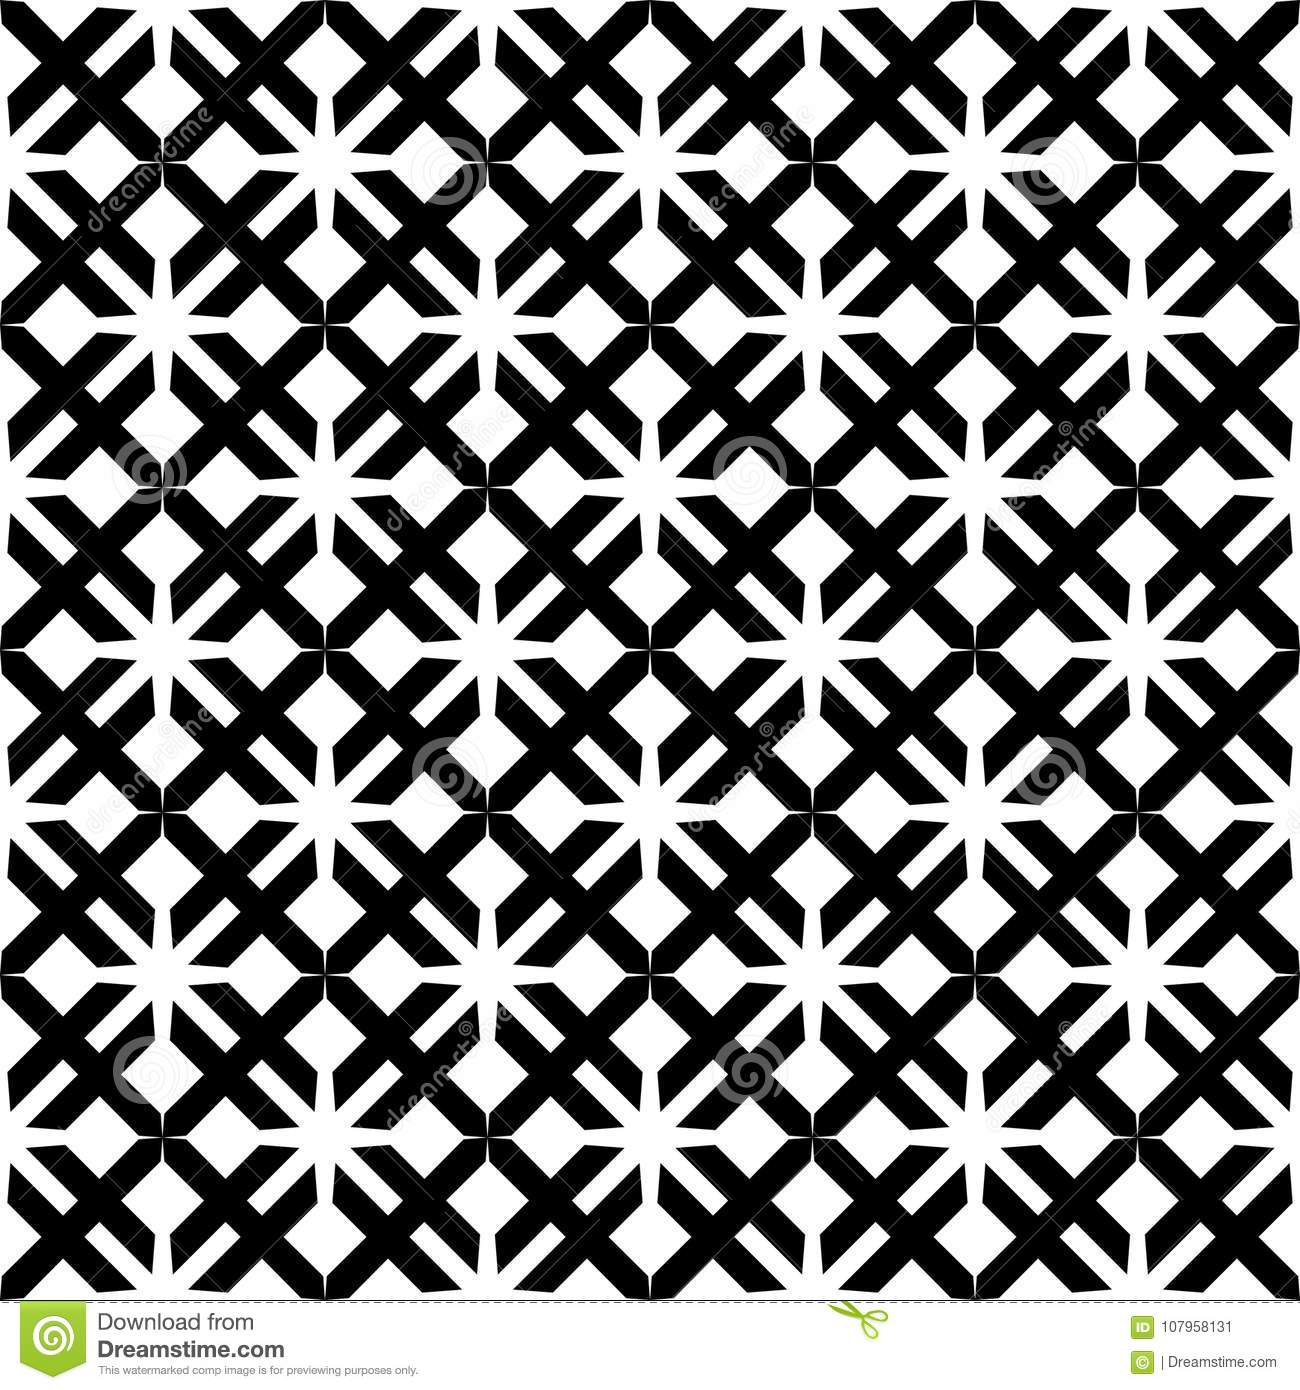 Vector seamless abstract diagonal pattern black and white. abstract background wallpaper. vector illustration.